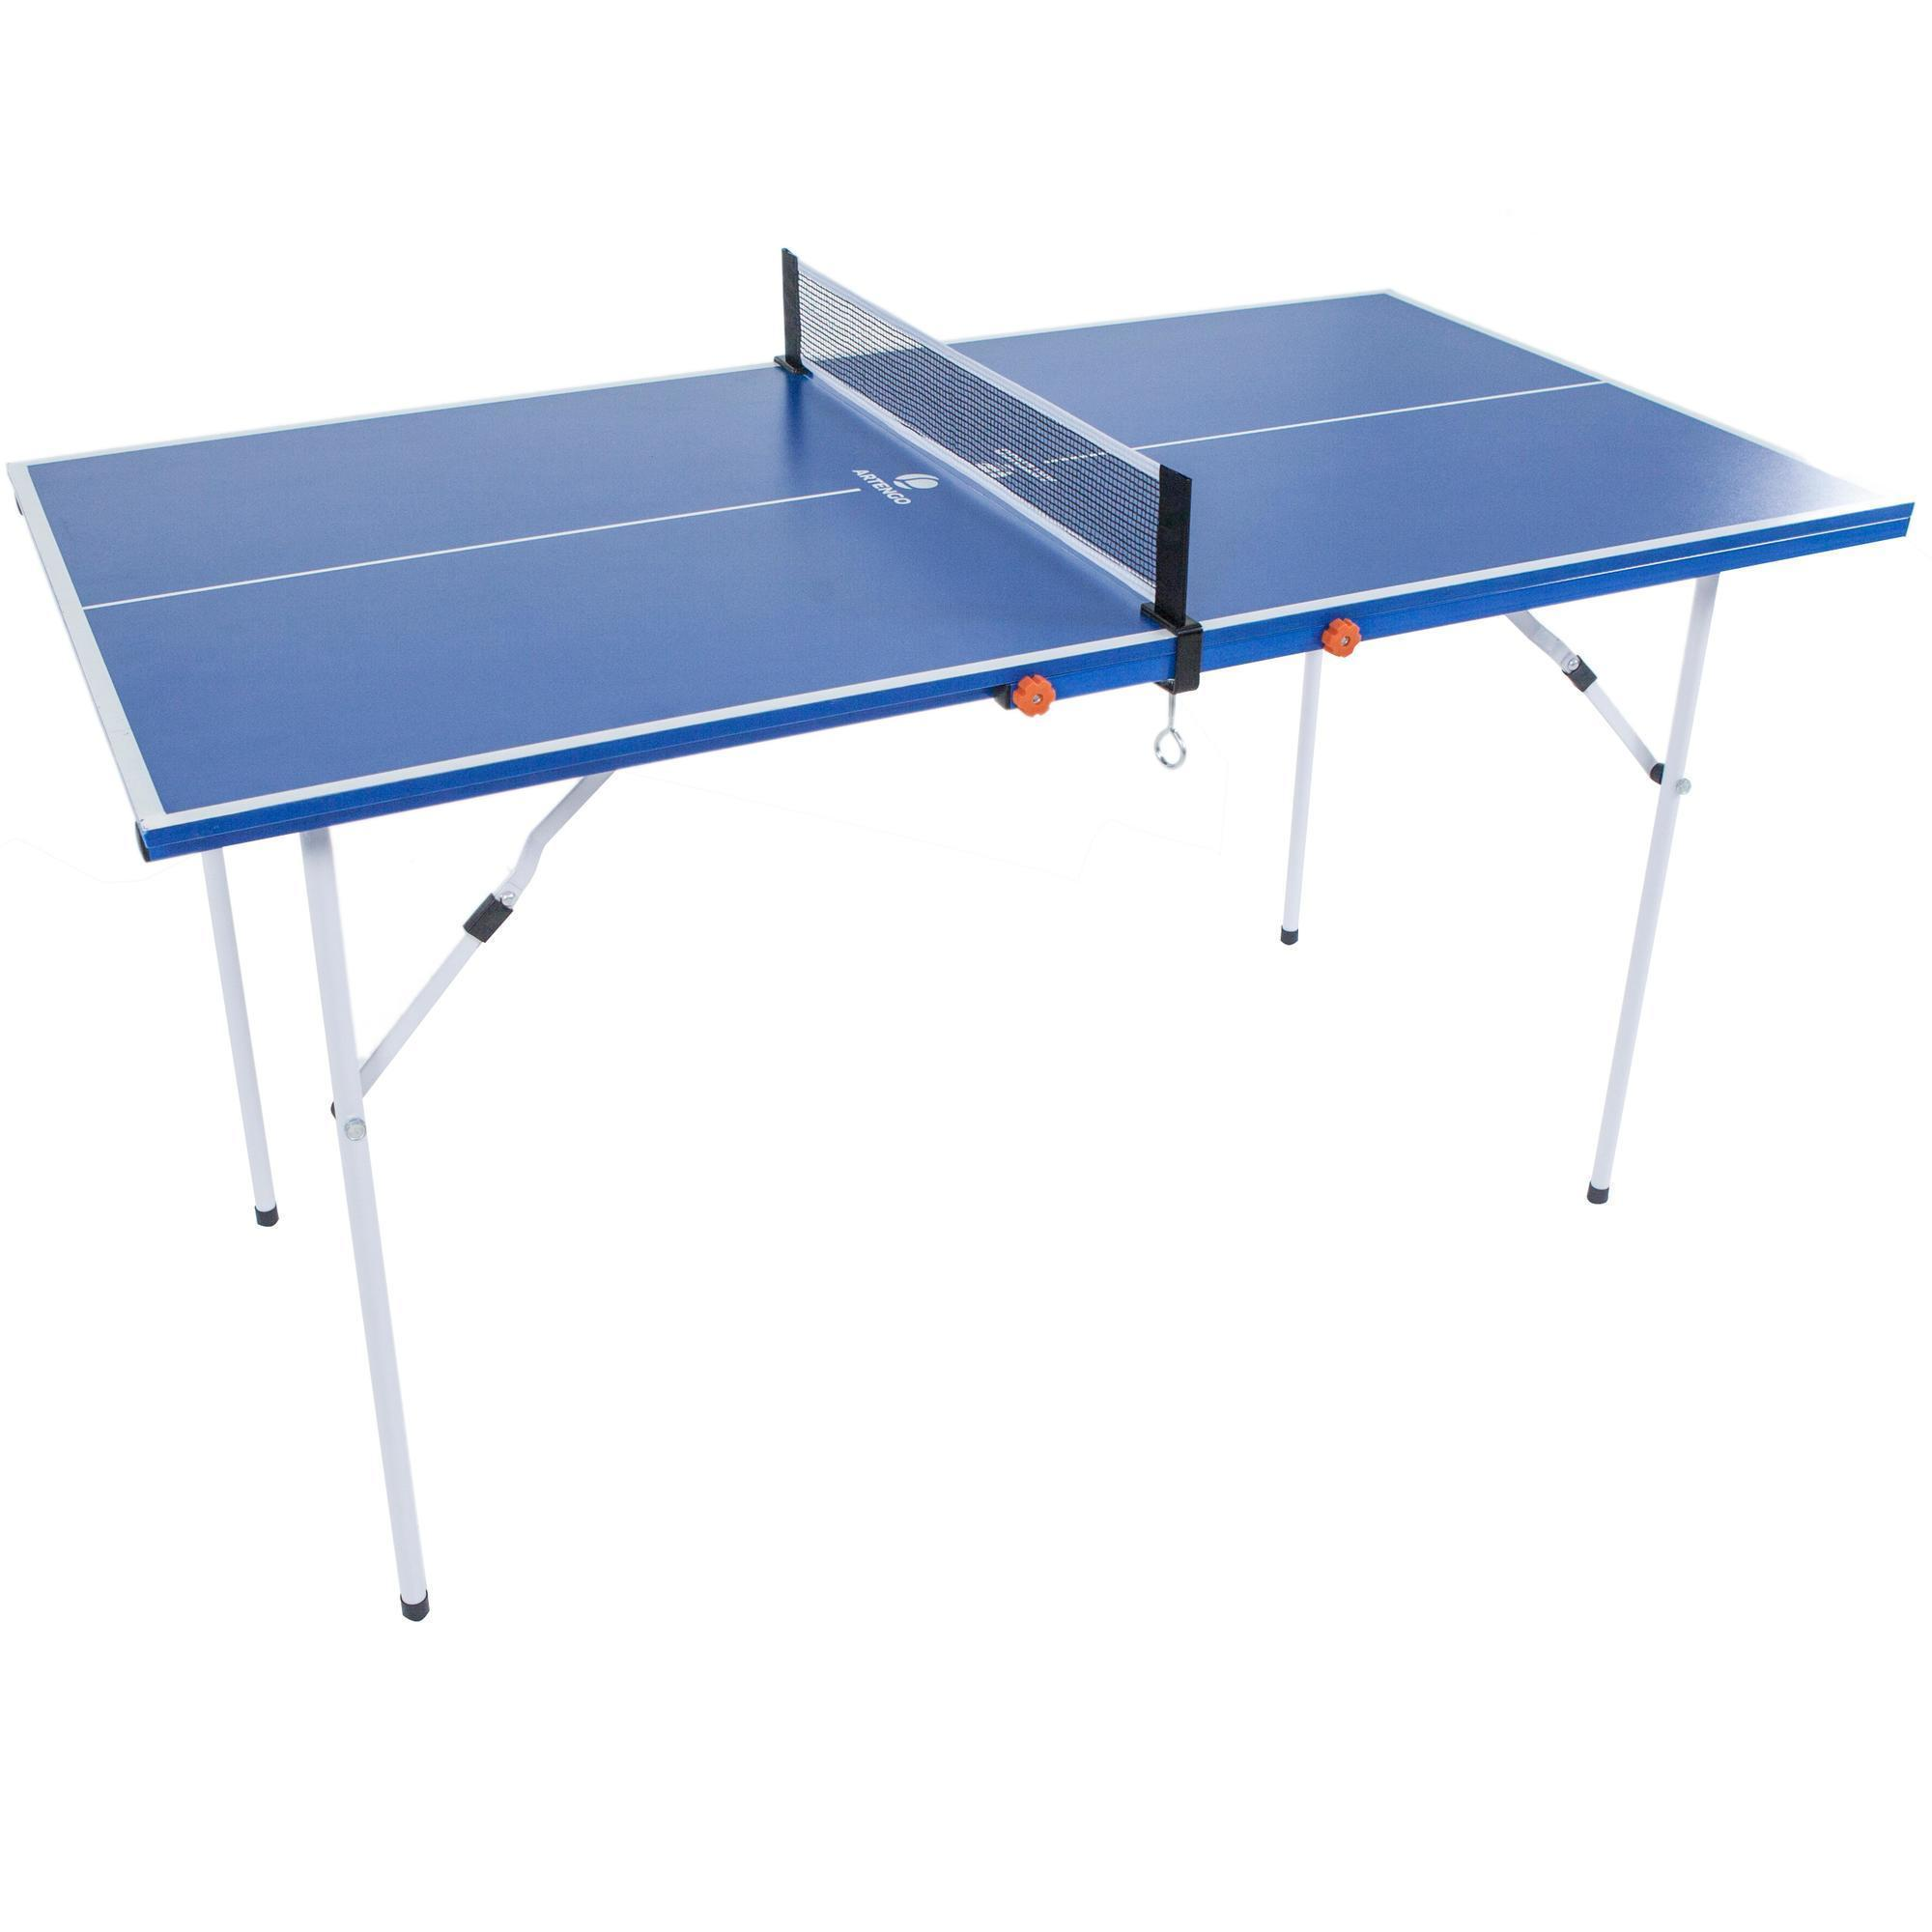 mini ft free table tennis table artengo. Black Bedroom Furniture Sets. Home Design Ideas